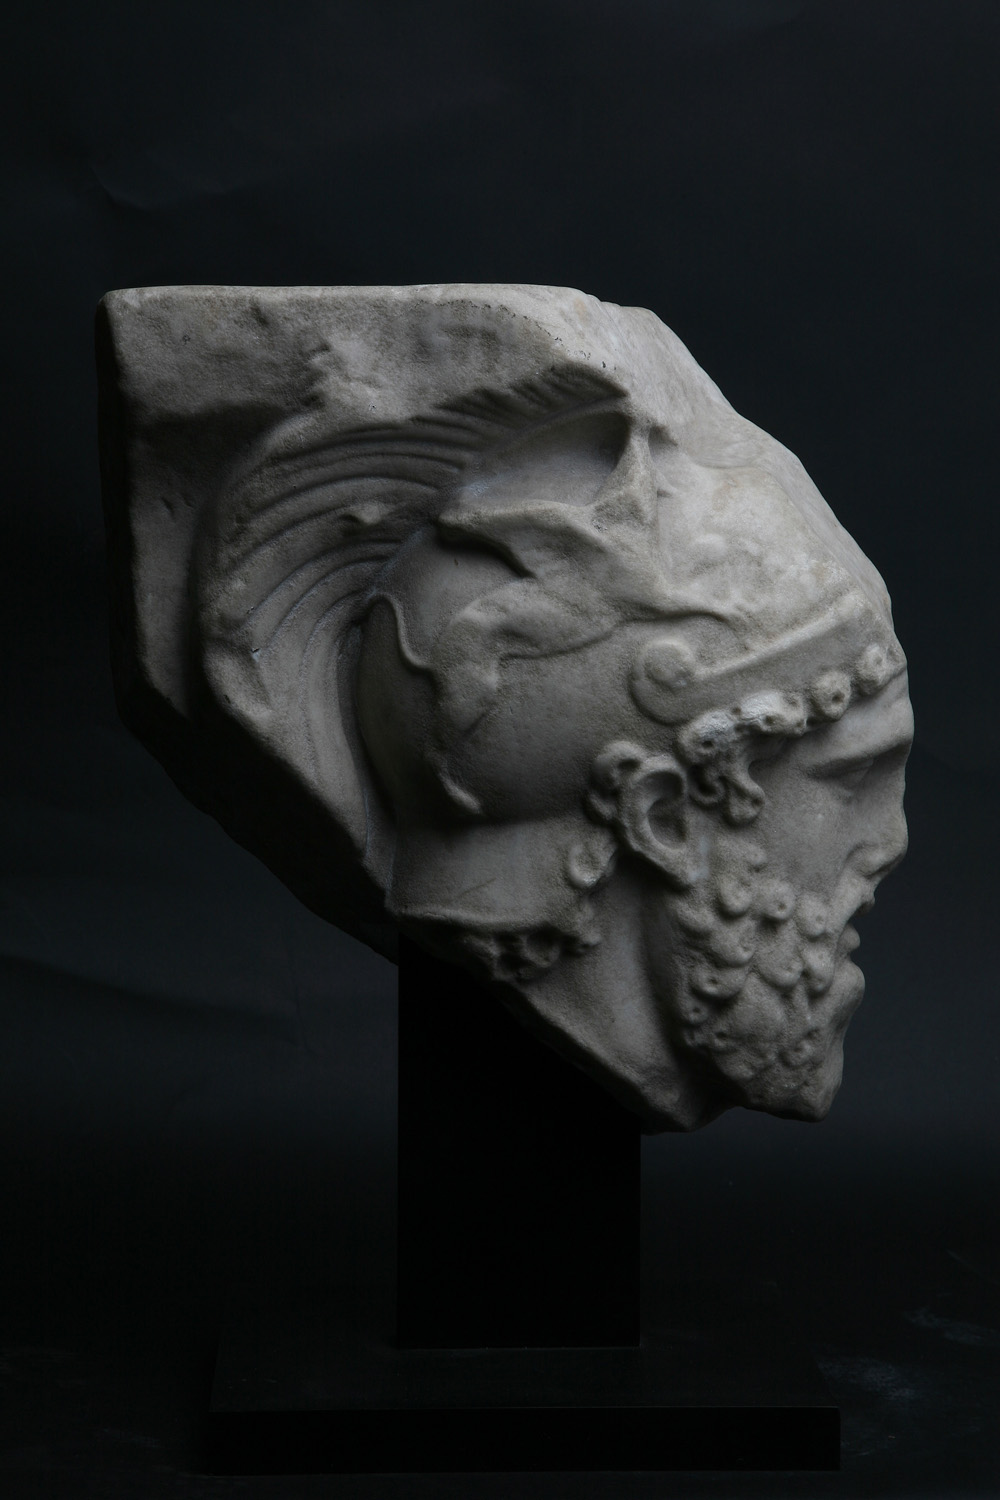 Roman marble relief fragment depicting the head of Mars ,Circa 2nd century AD,Height 29 cm,Courtesy of Rupert Wace Ancient Art Ltd, London